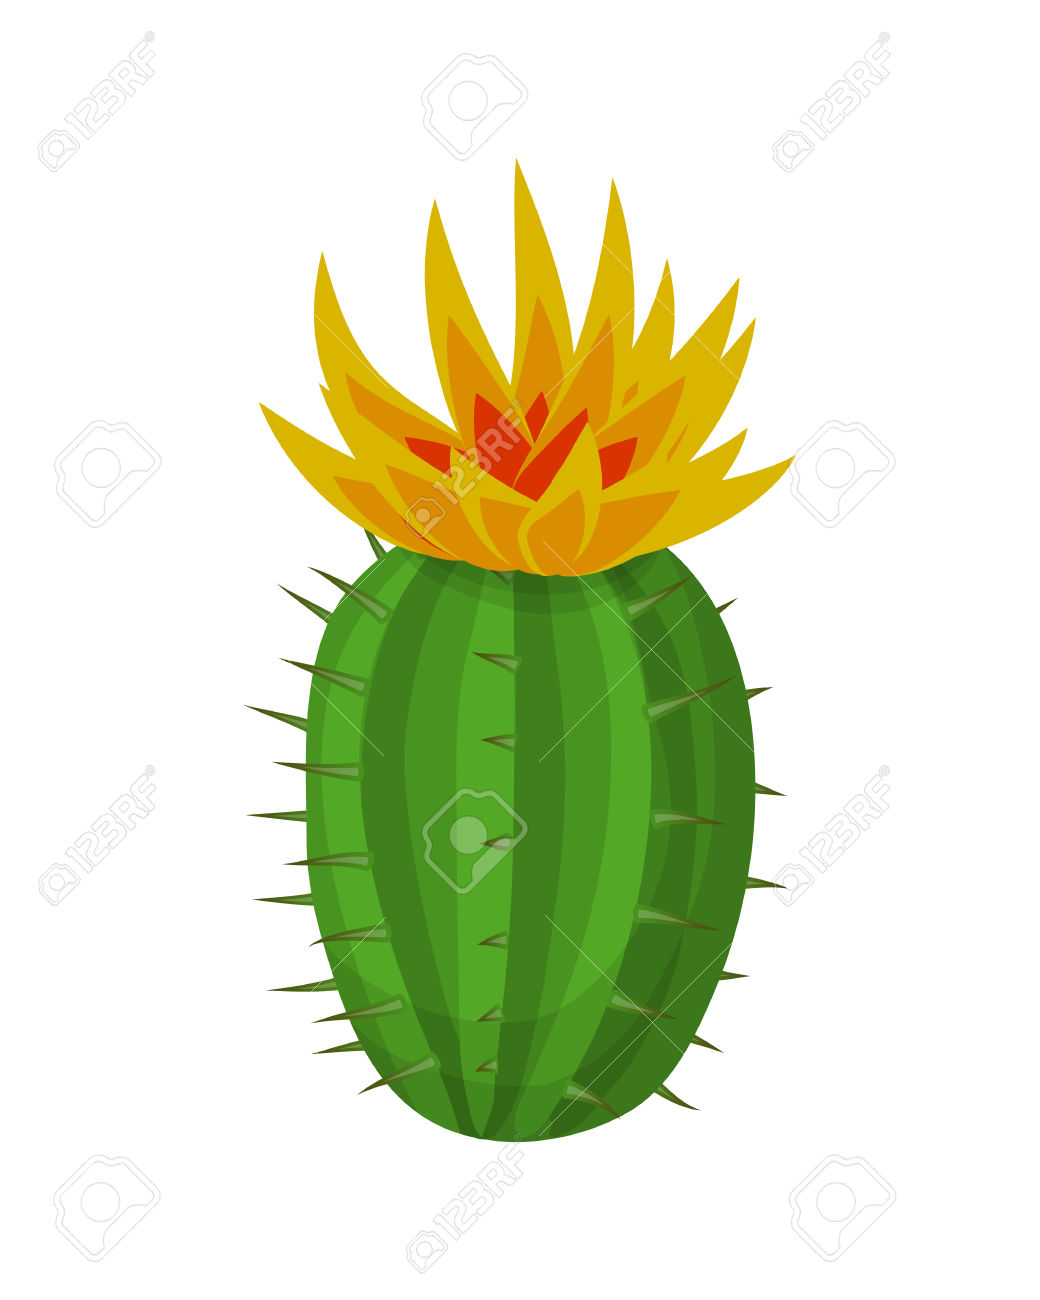 Cactus Plant With Flowers. Blooming Cactus. Vector Illustration.